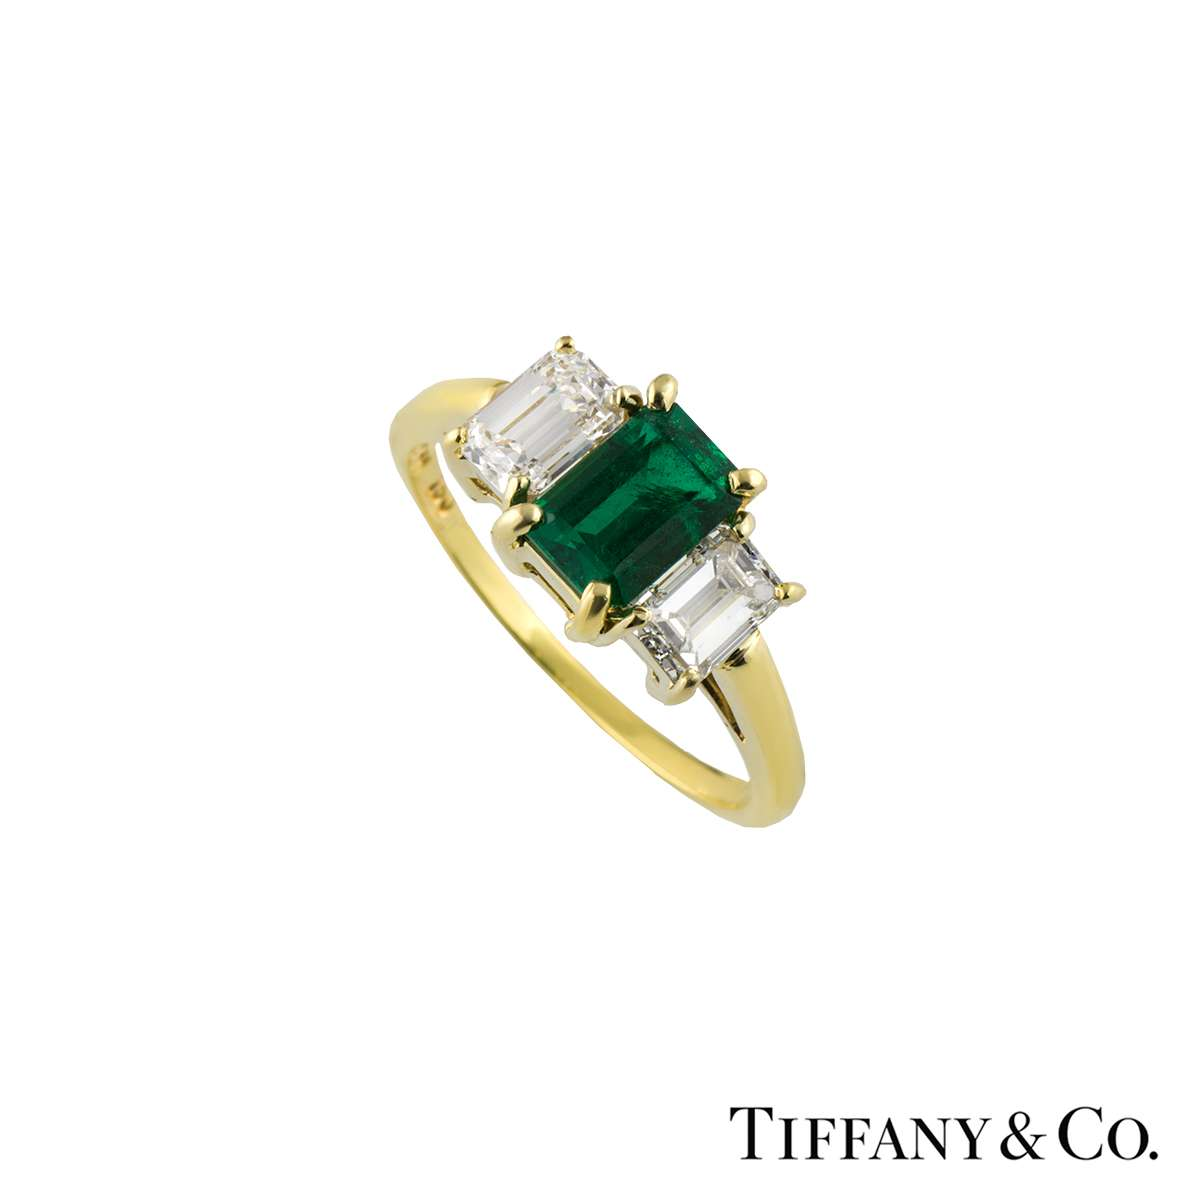 Tiffany & Co. Yellow Gold Emerald and Diamond Trilogy Ring